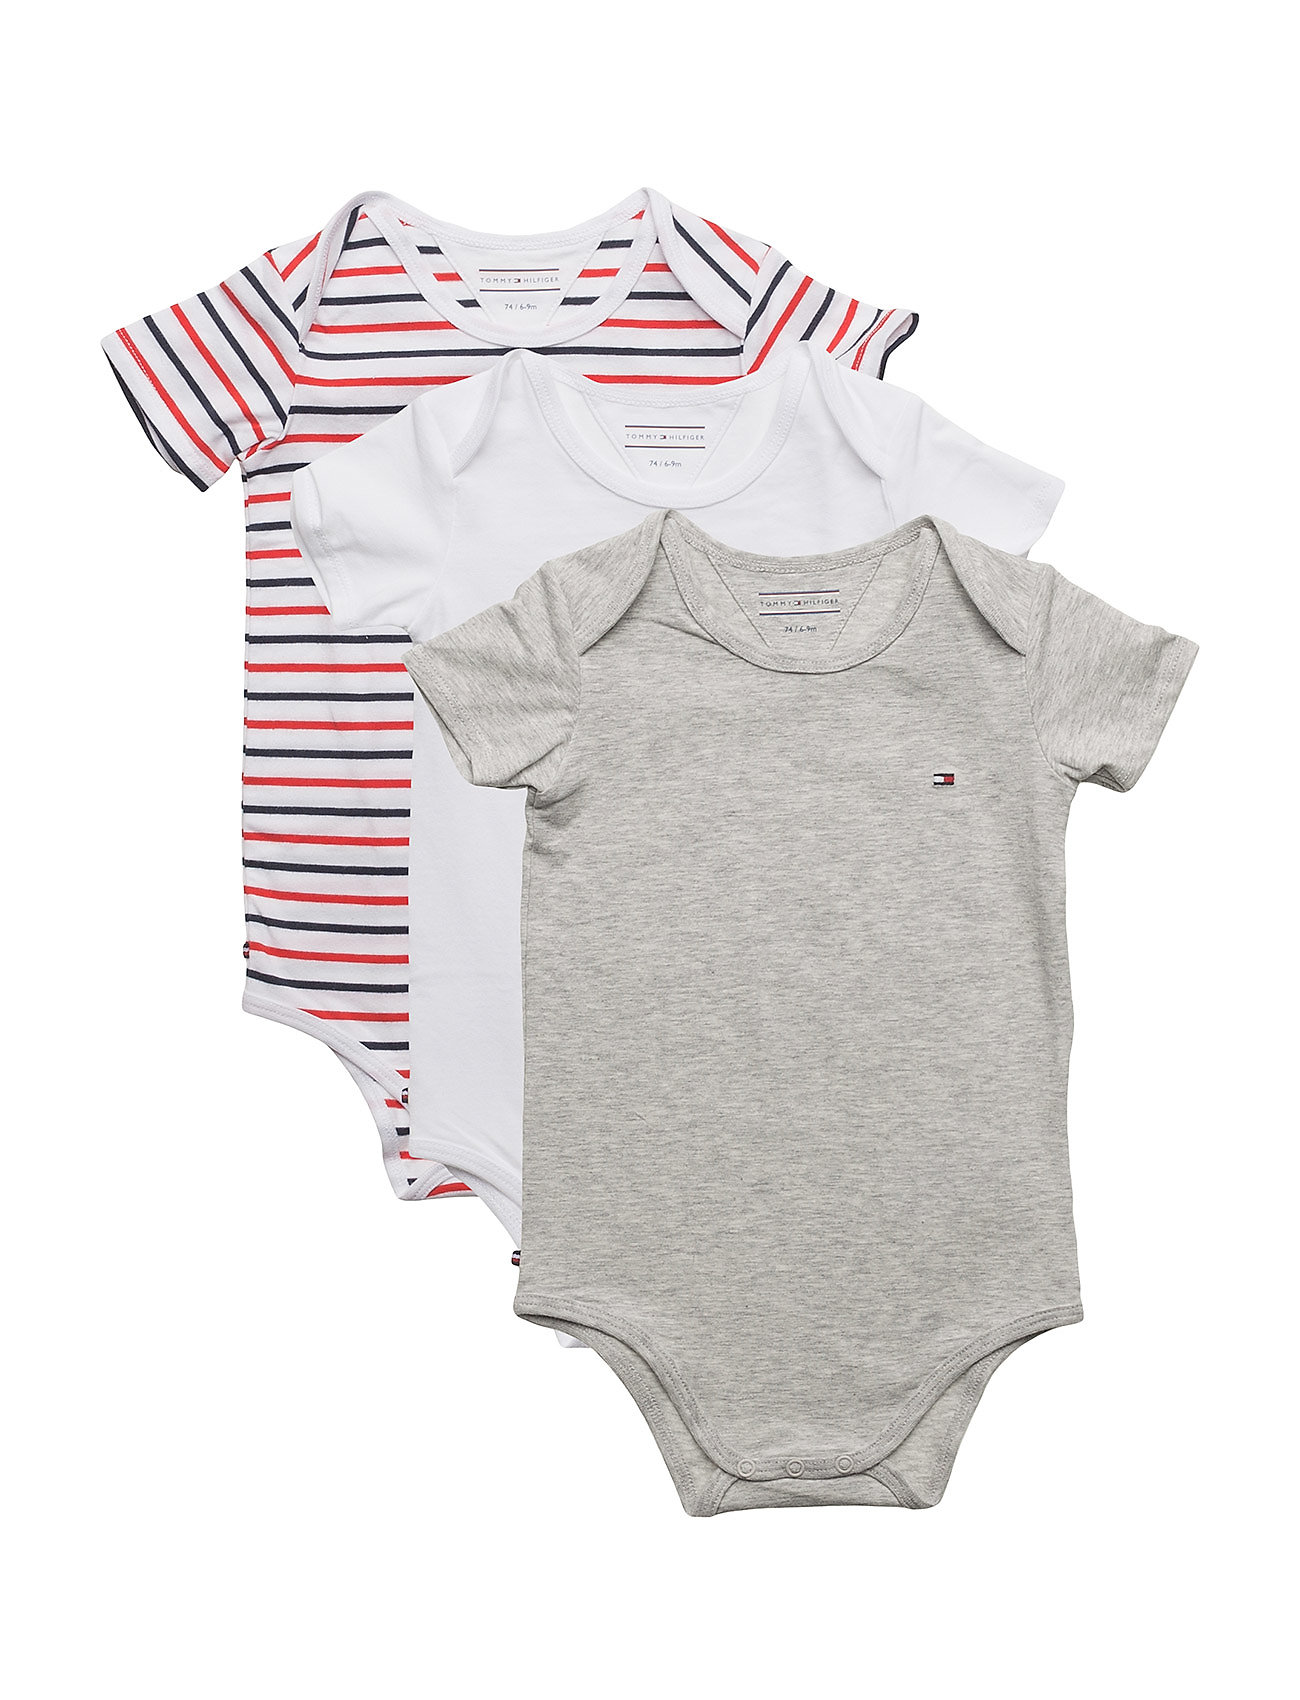 Tommy Hilfiger BODY S/S BABY 3 PACK